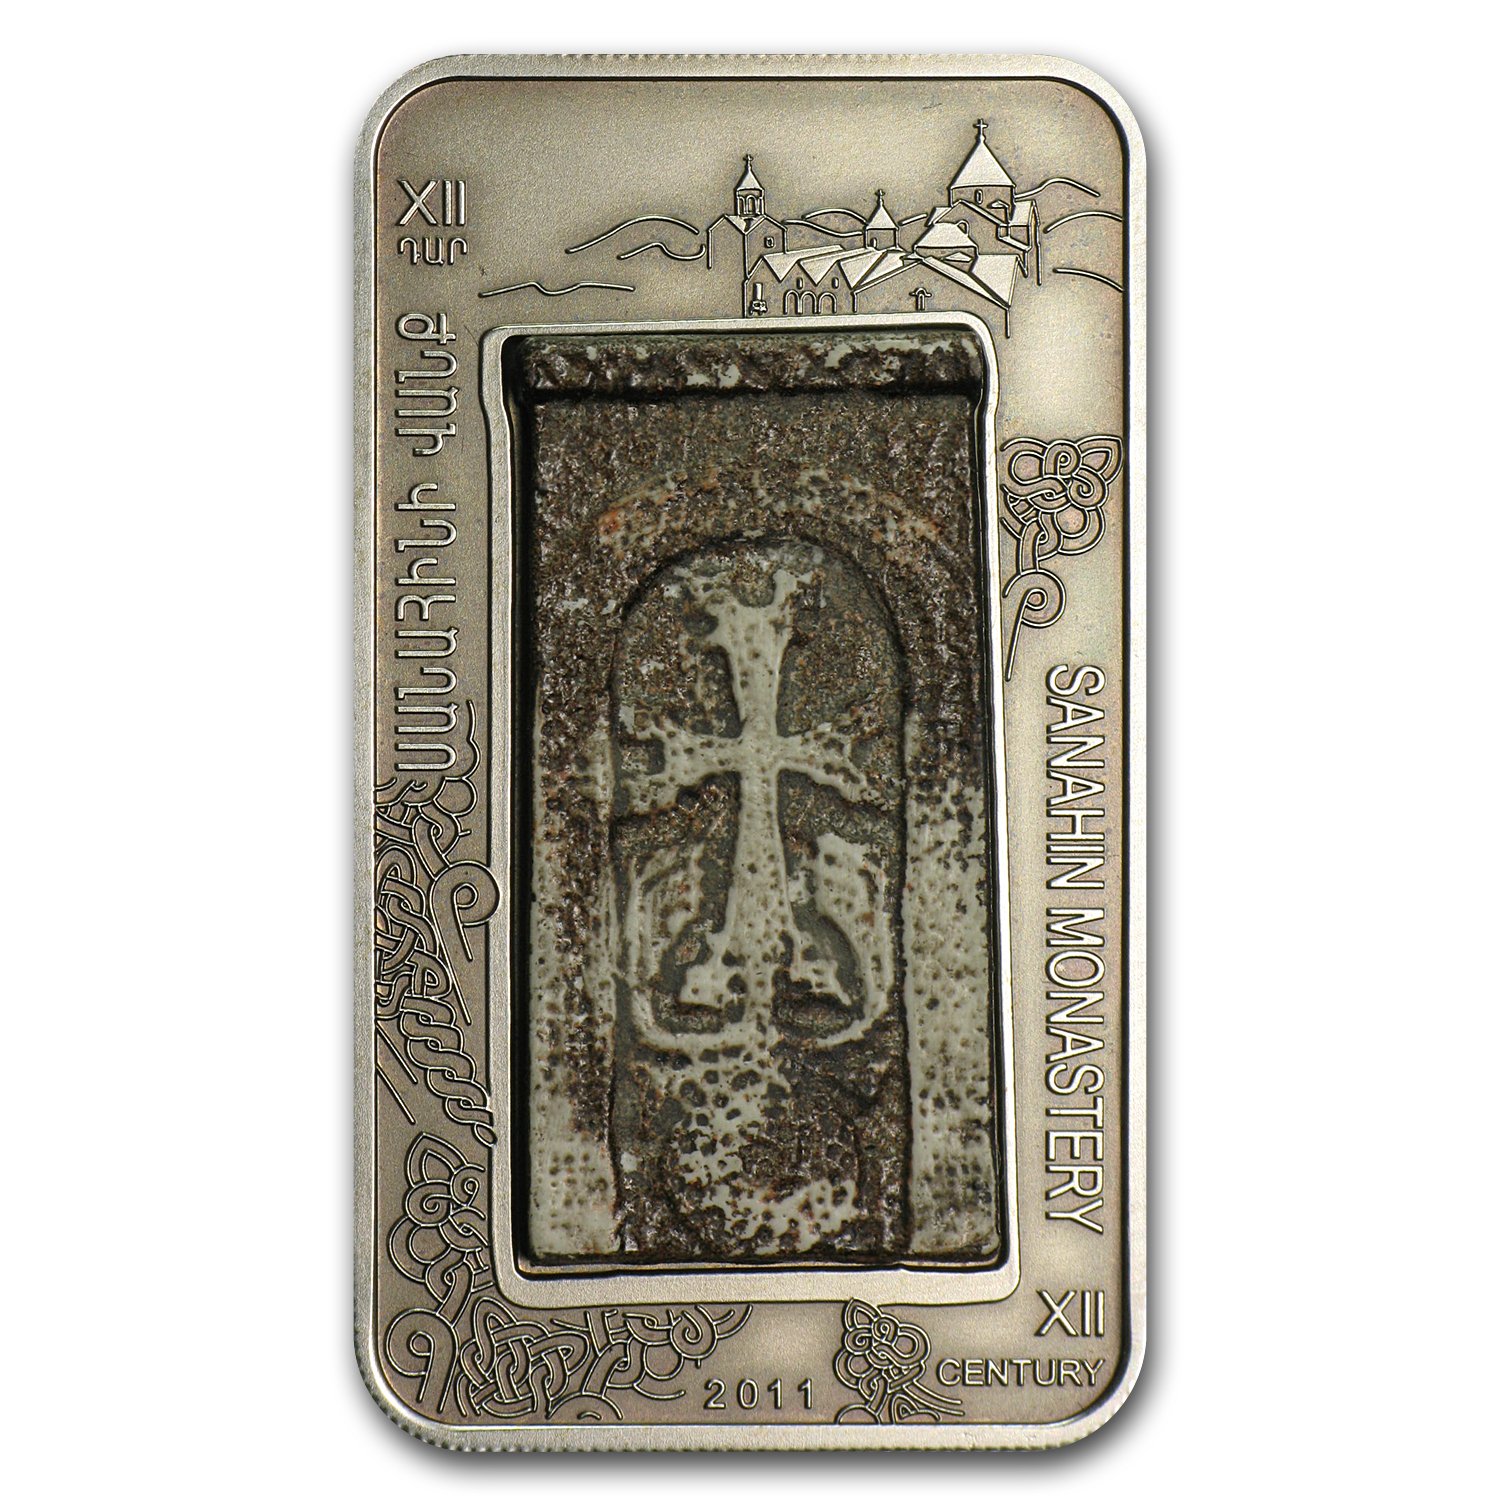 2011 Armenia 1000 Dram Cross-Stones of Armenia The Sanahin